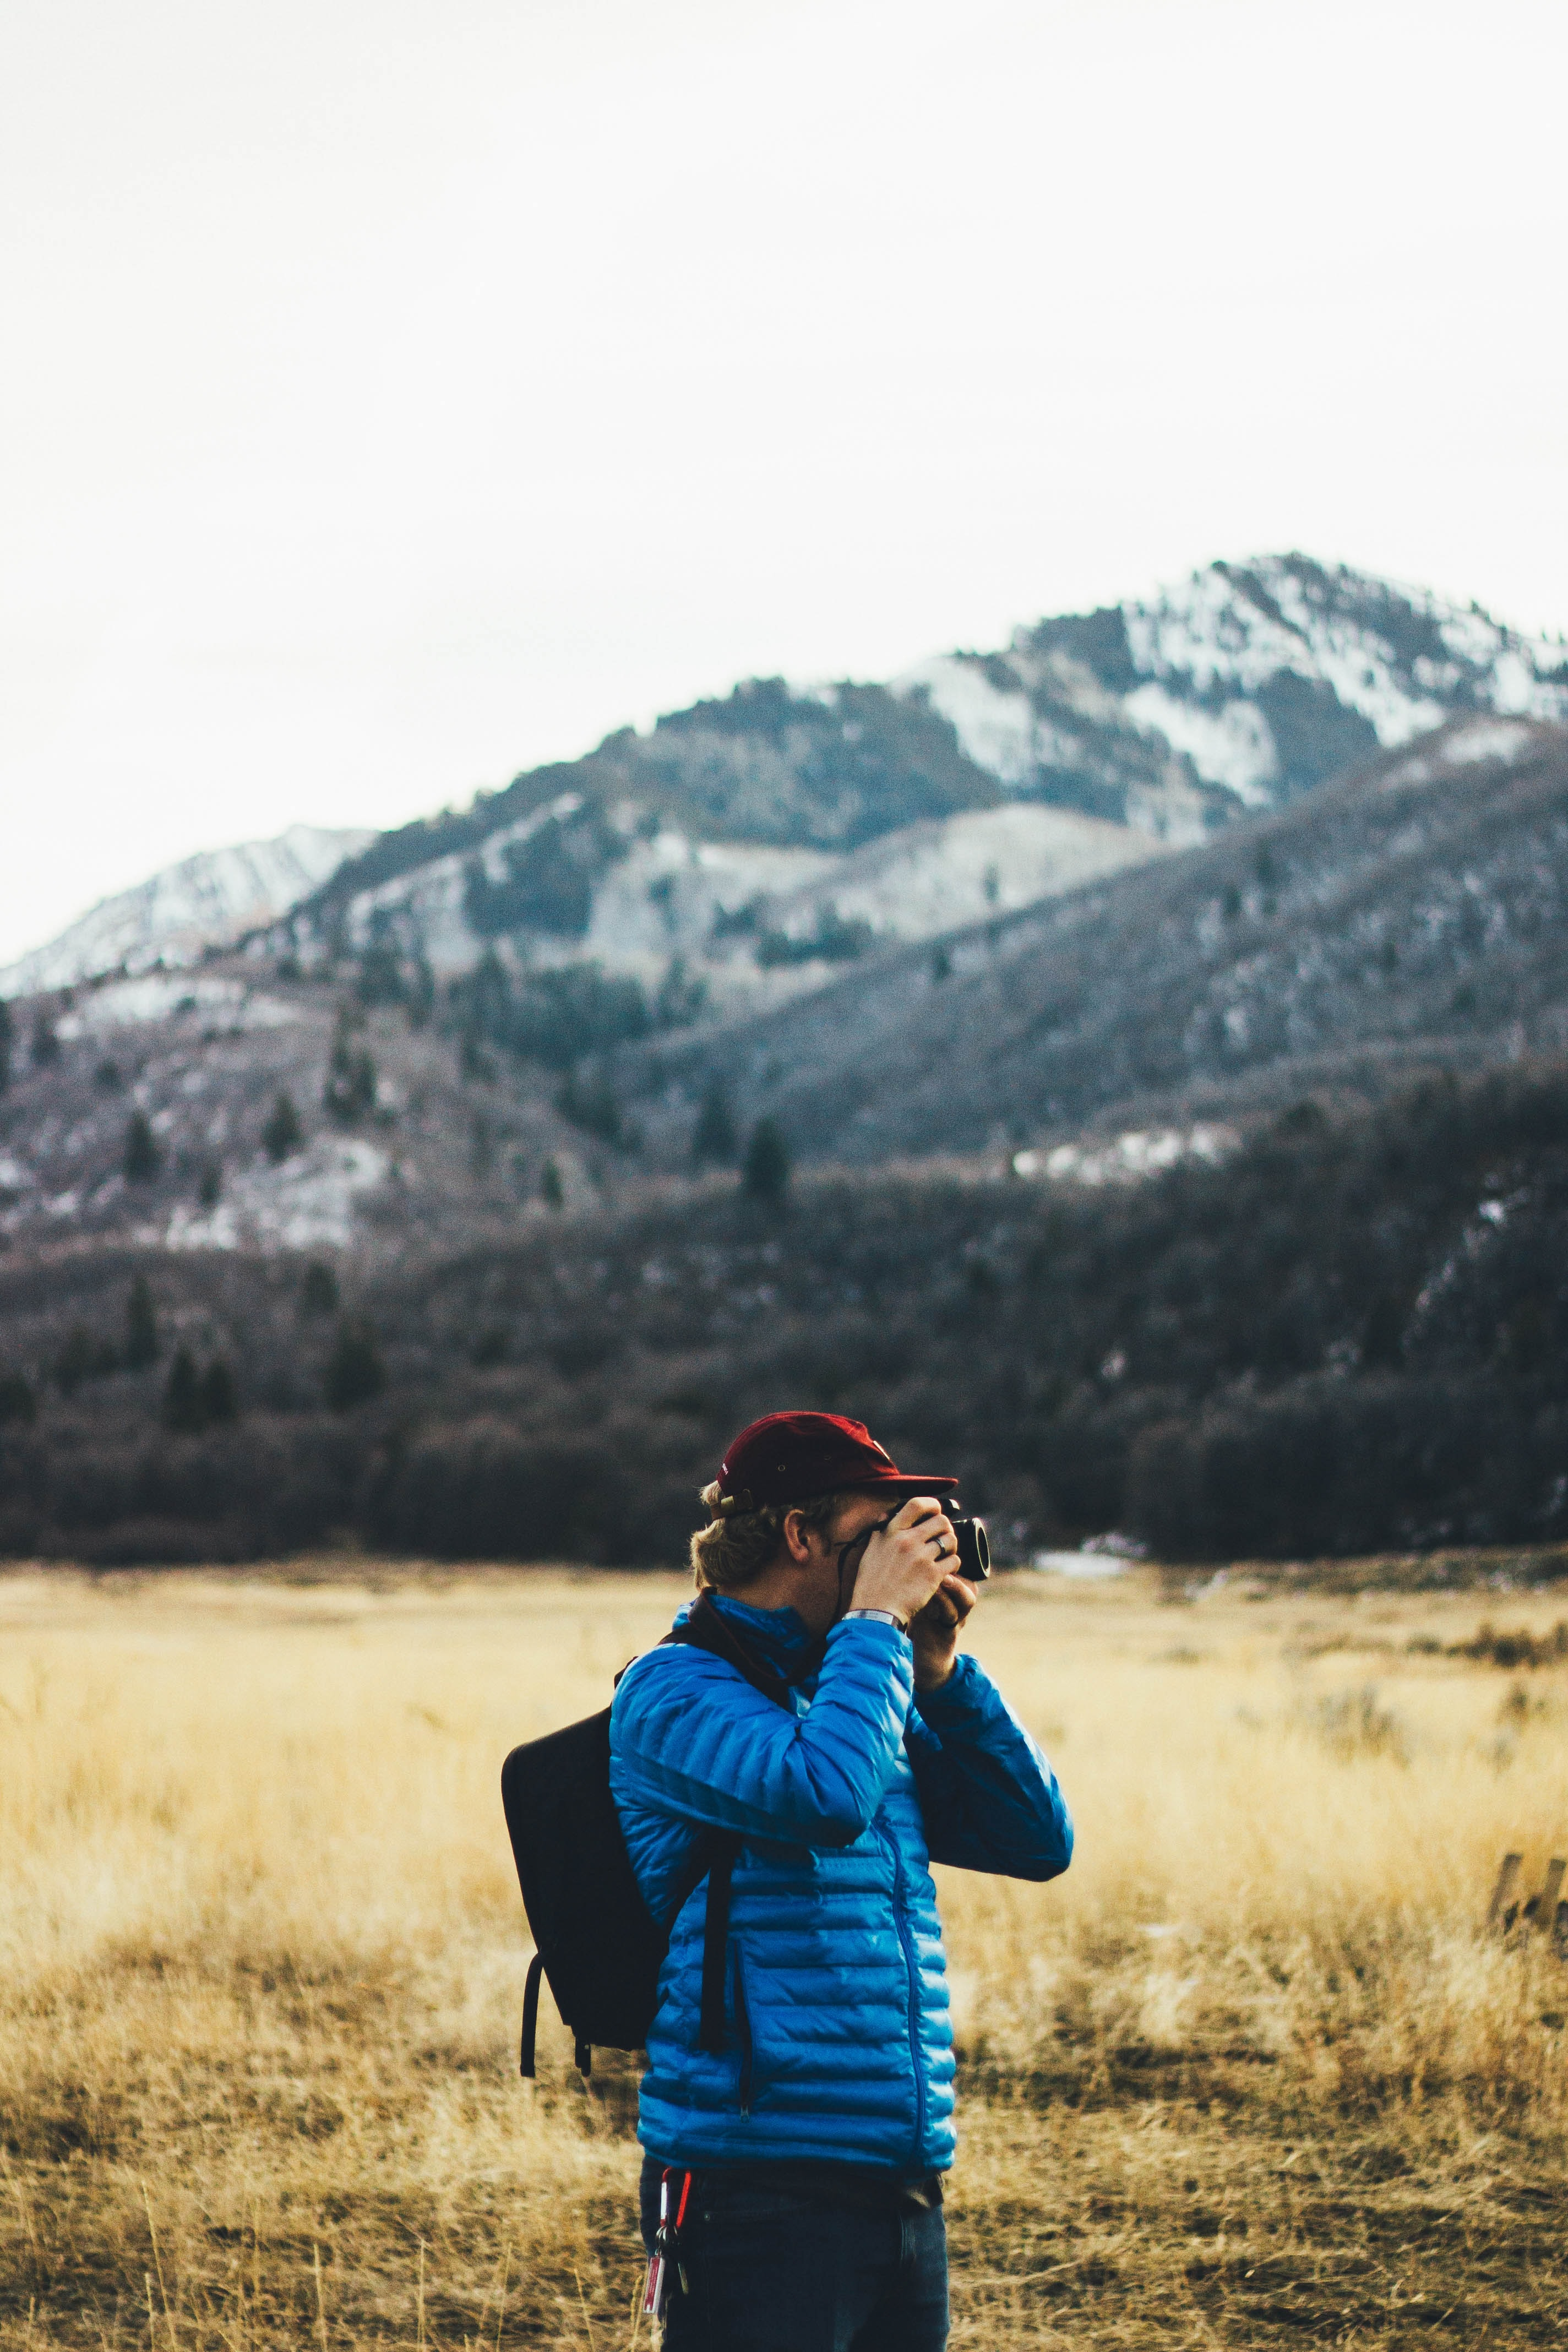 man standing near mountain taking photo